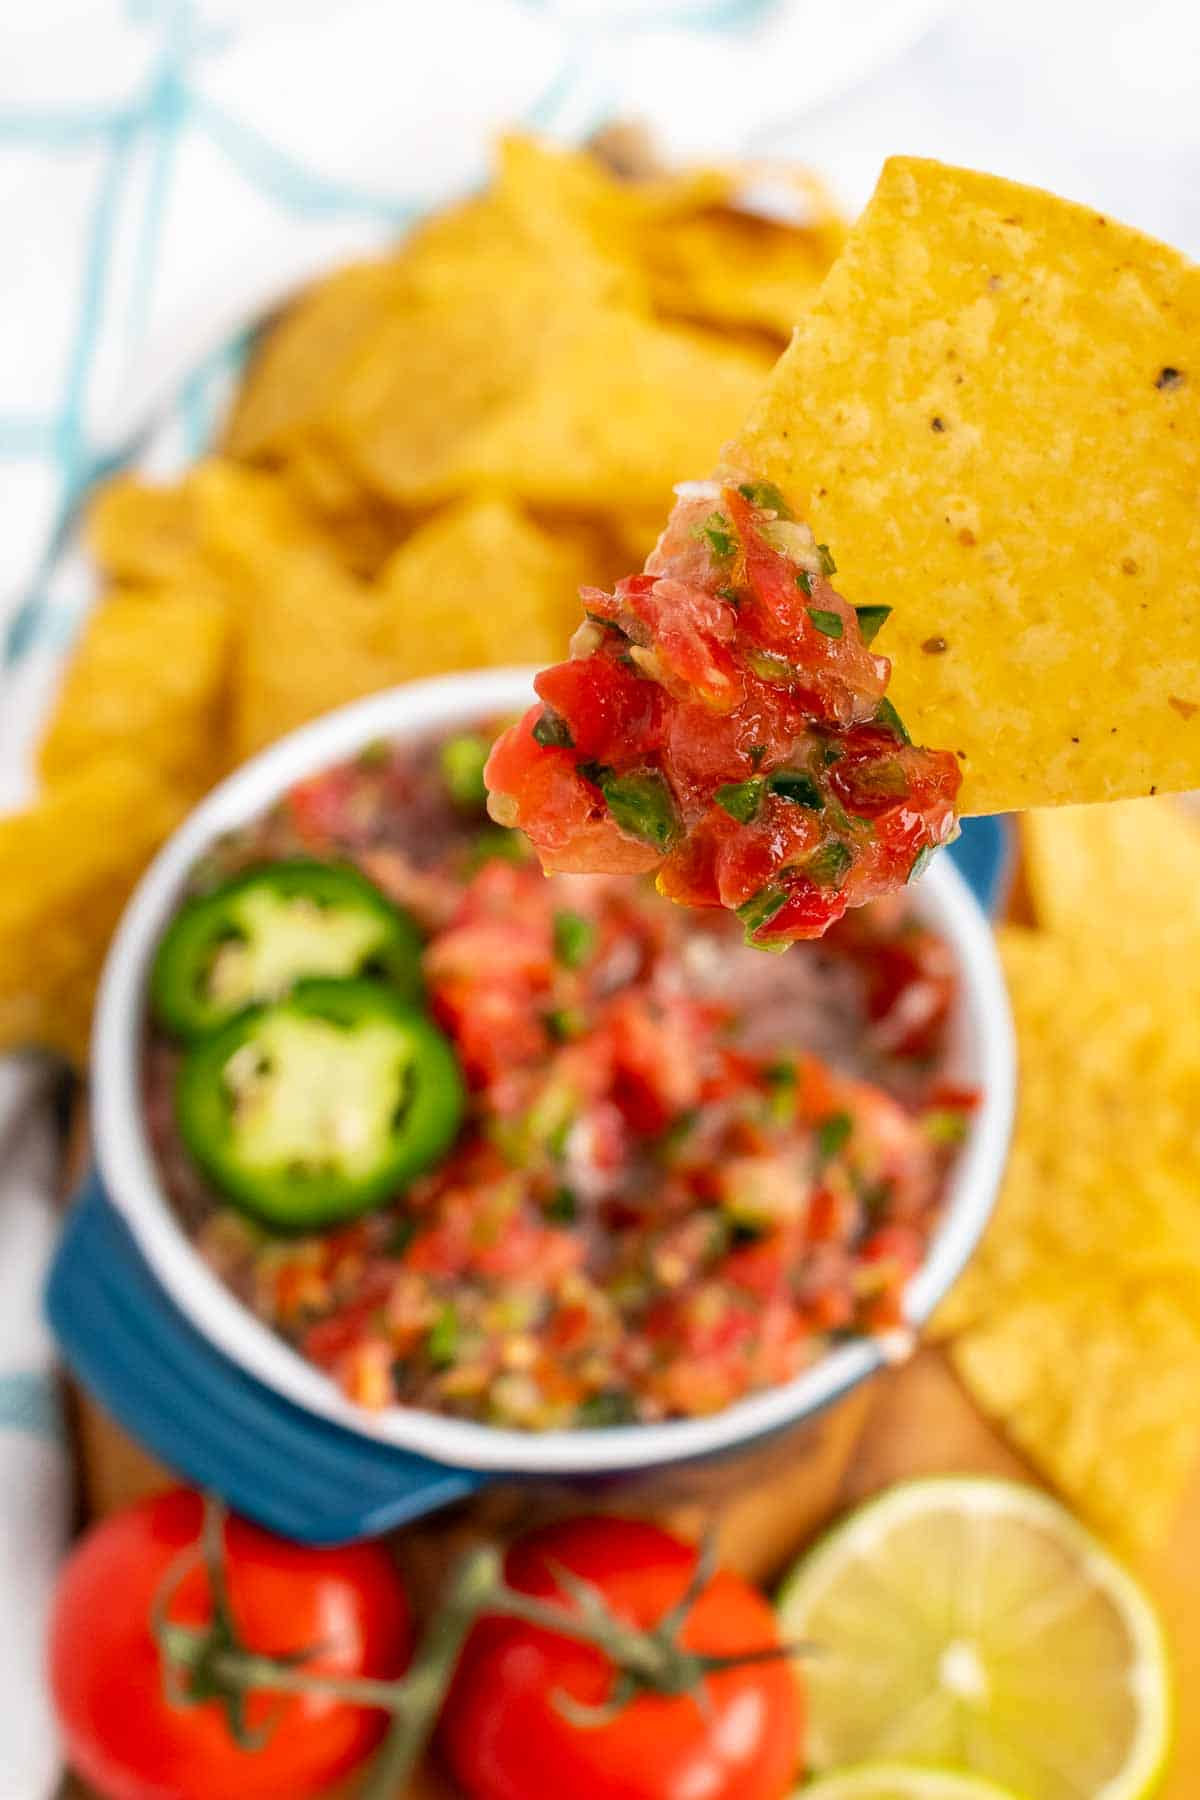 Chip with salsa over a bowl of salsa